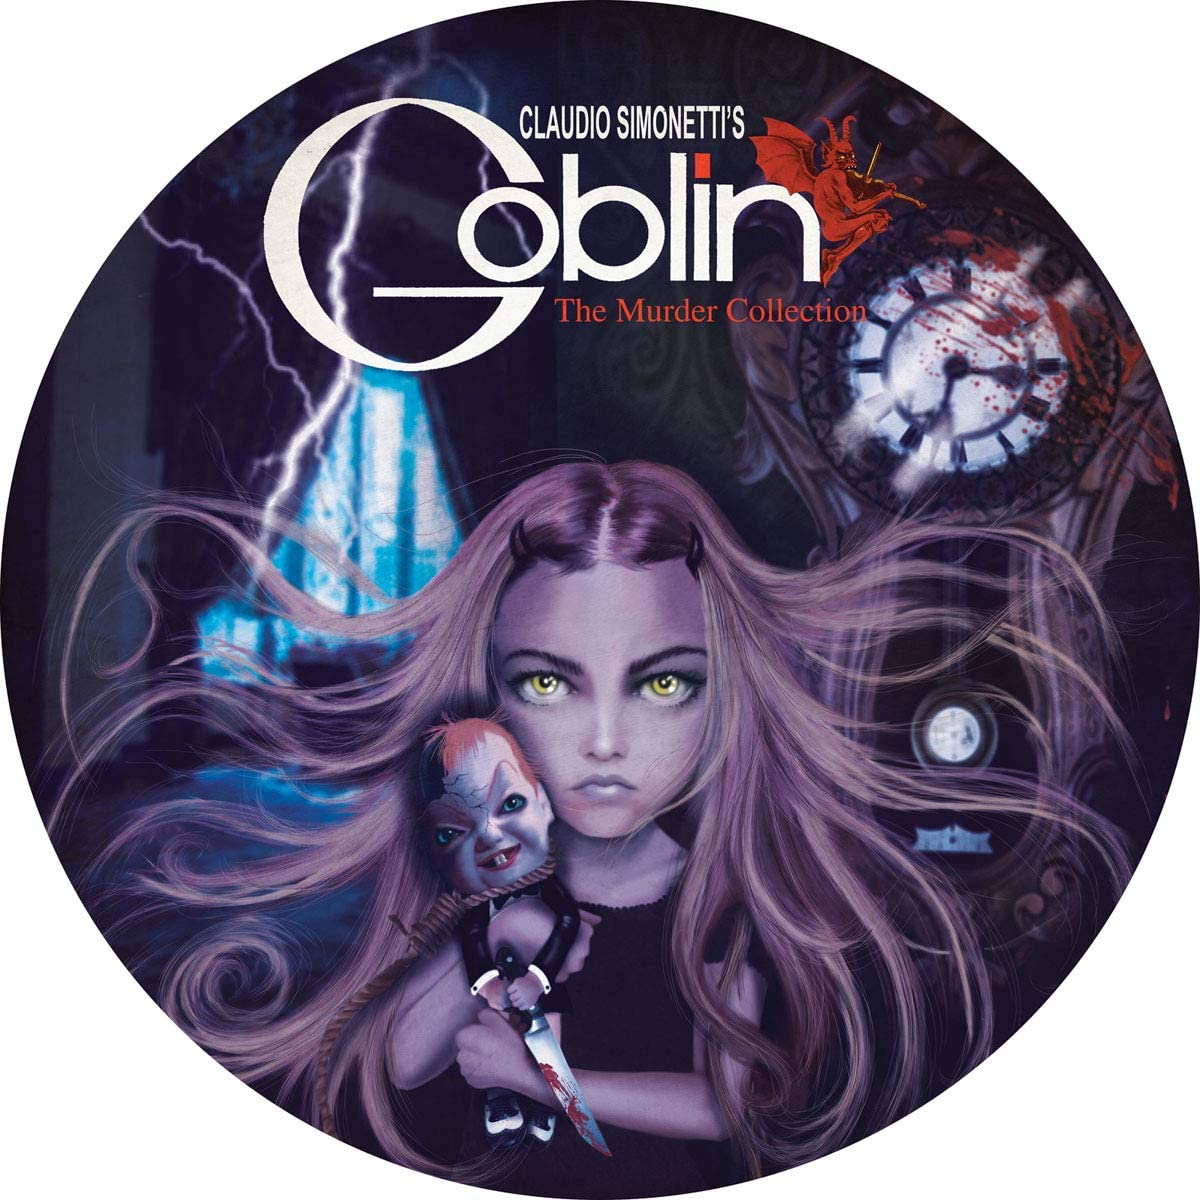 Goblin/The Murder Collection (Picture Disc) [LP]